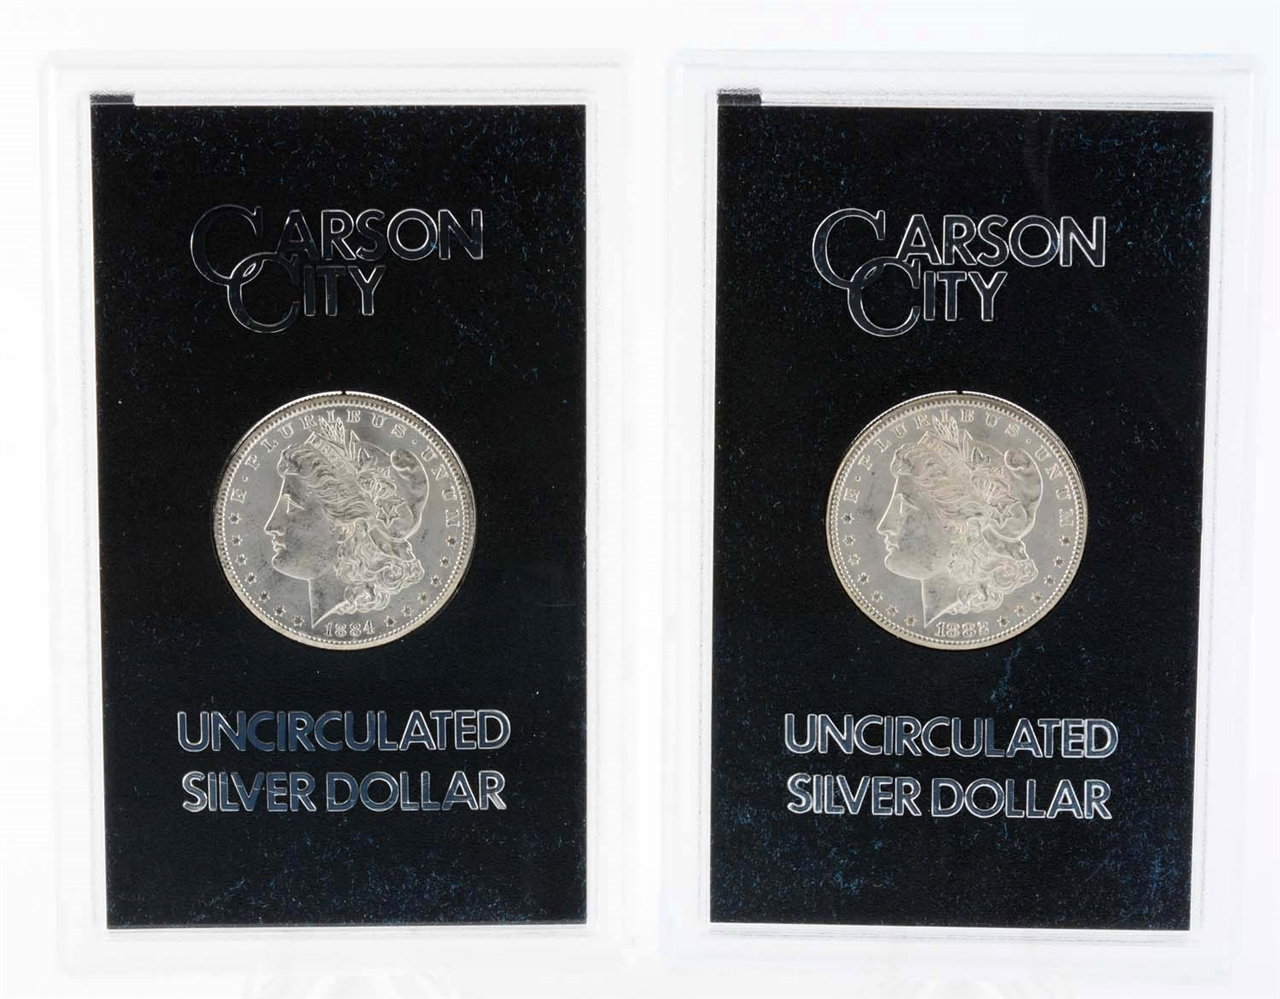 Lot of 2: Carson City Silver Dollars.